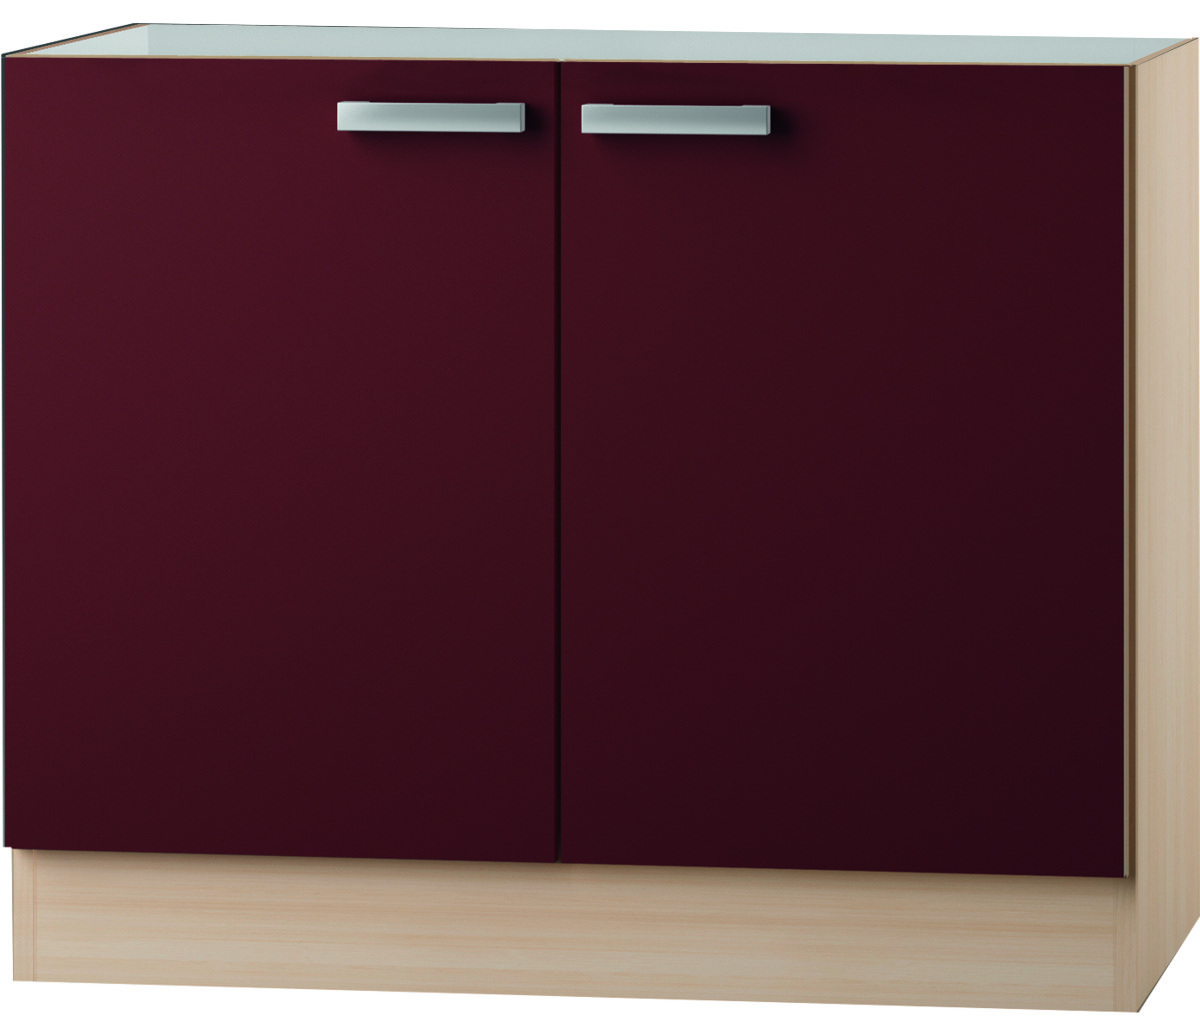 kult bergamo sp lenschrank 100 cm breit bordeaux rot splo106 ebay. Black Bedroom Furniture Sets. Home Design Ideas